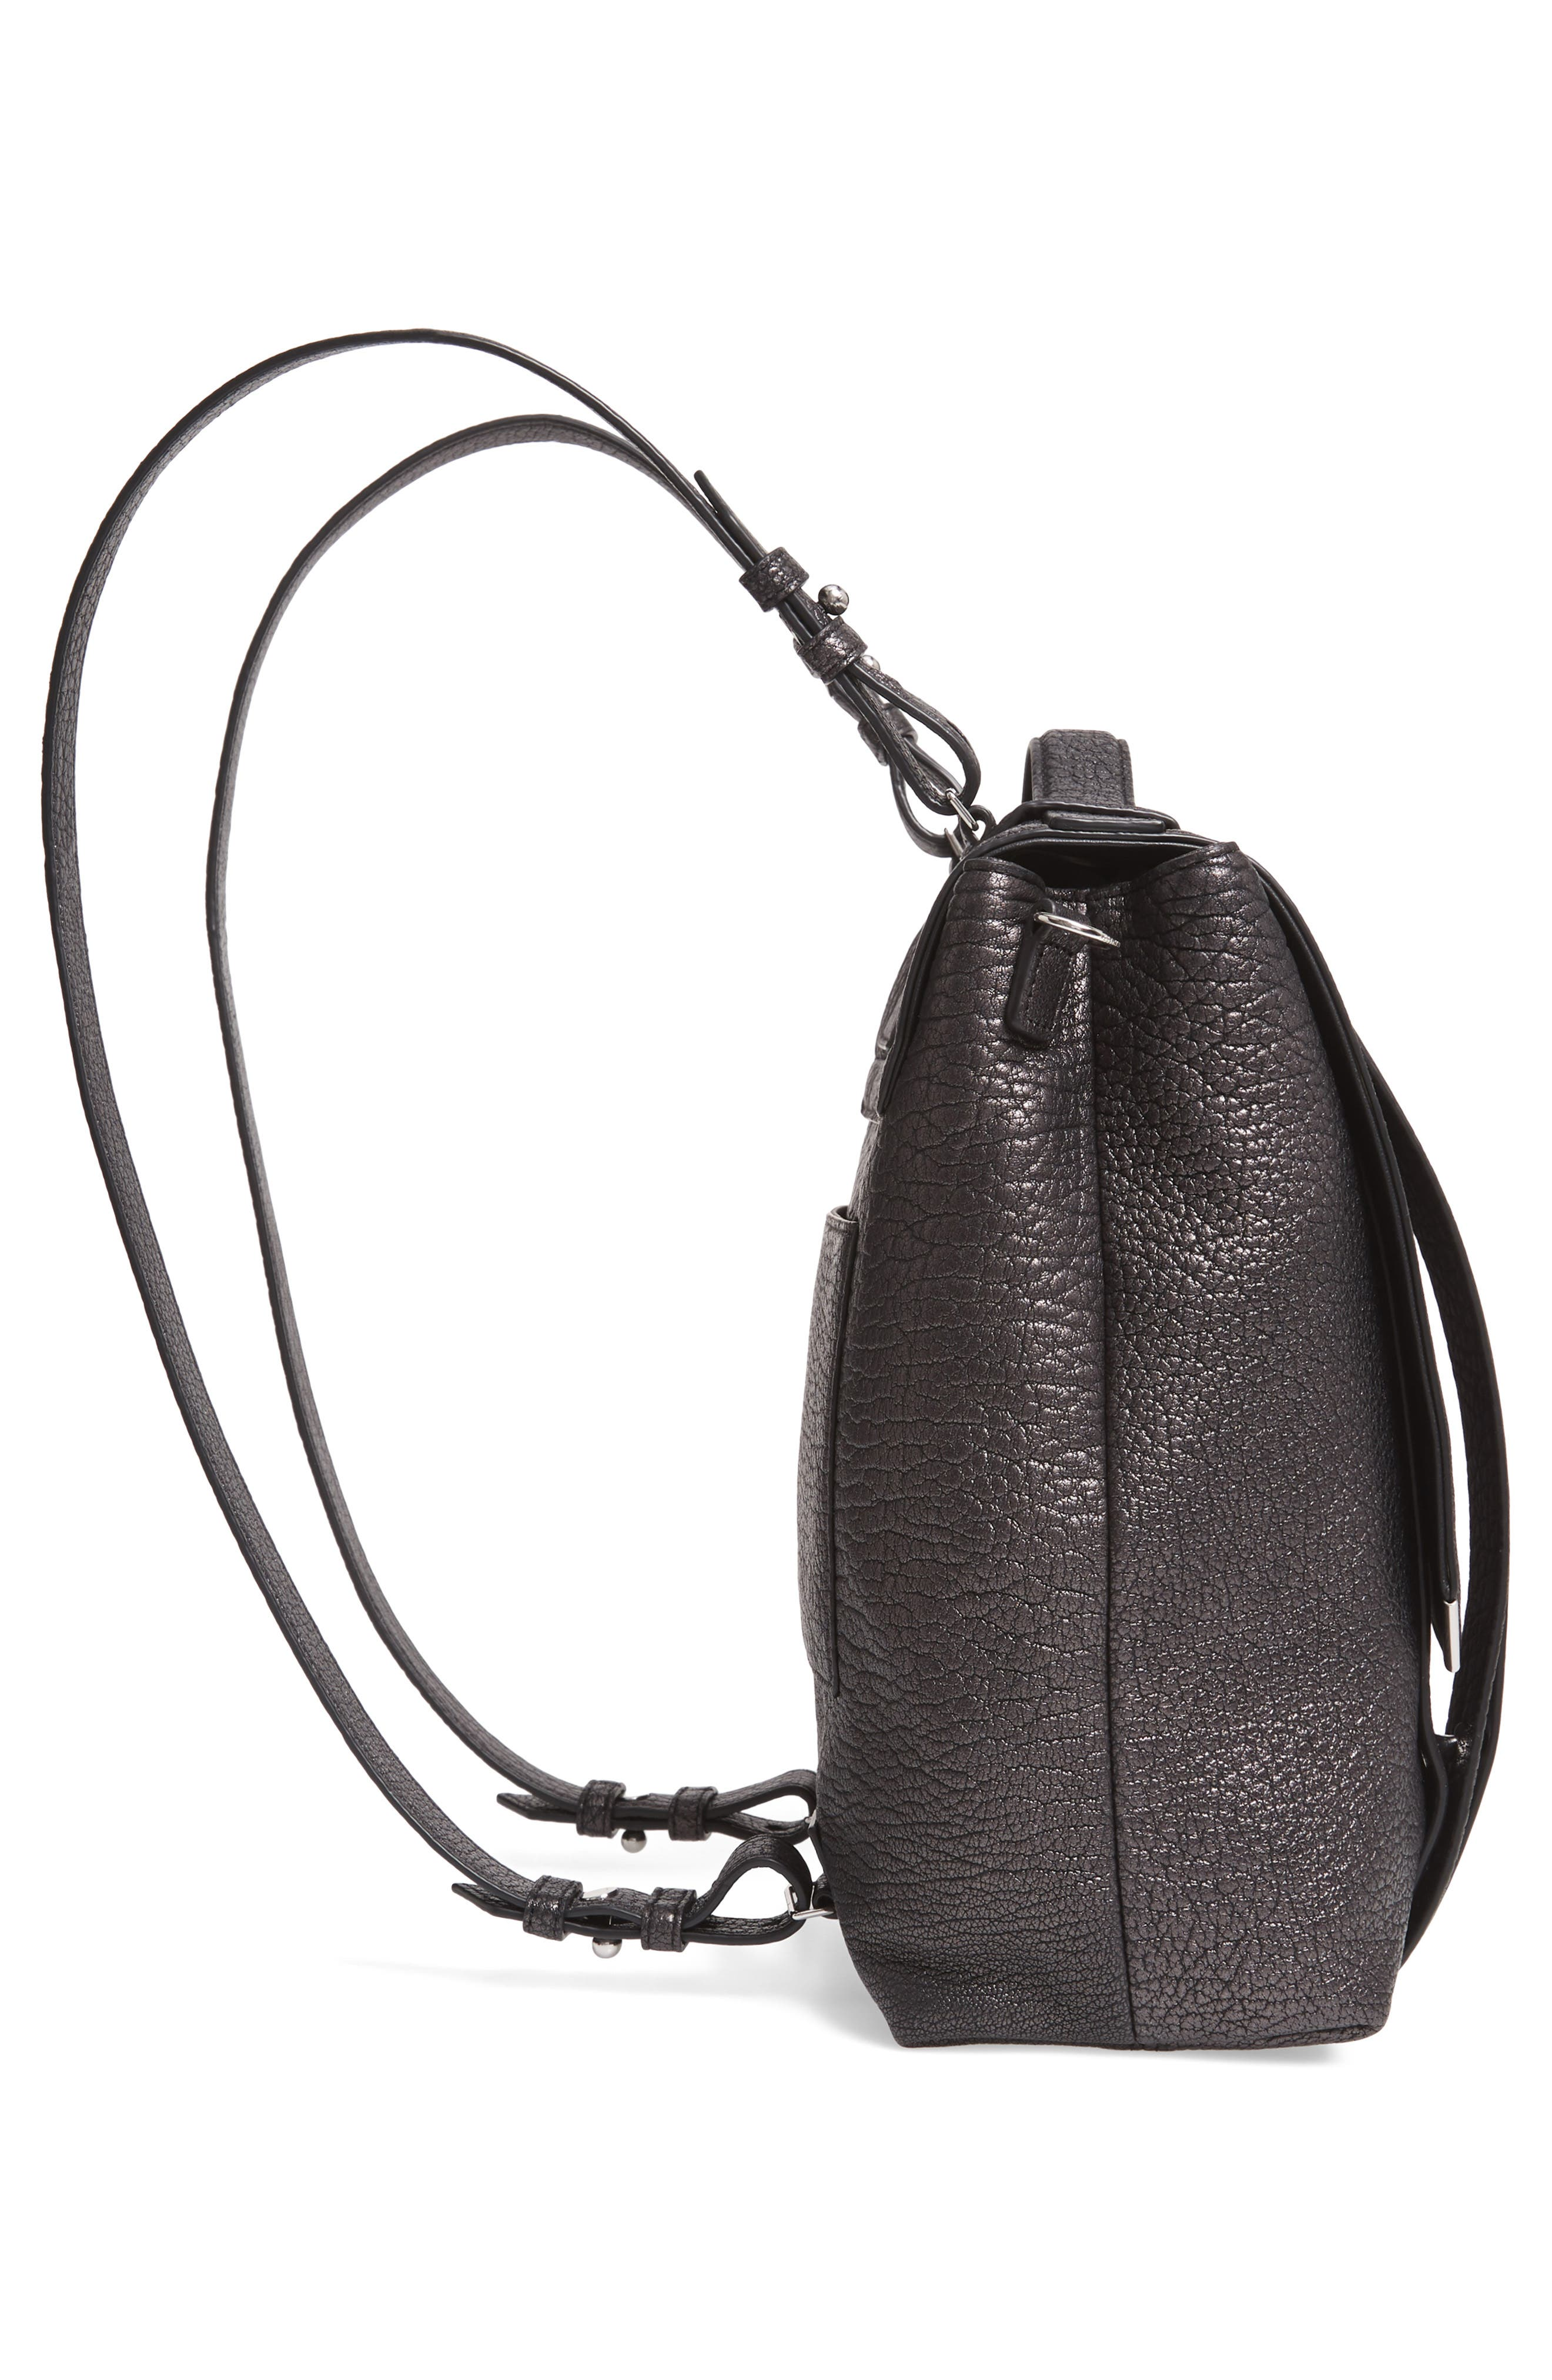 ALLSAINTS, Vincent Leather Backpack, Alternate thumbnail 7, color, 022